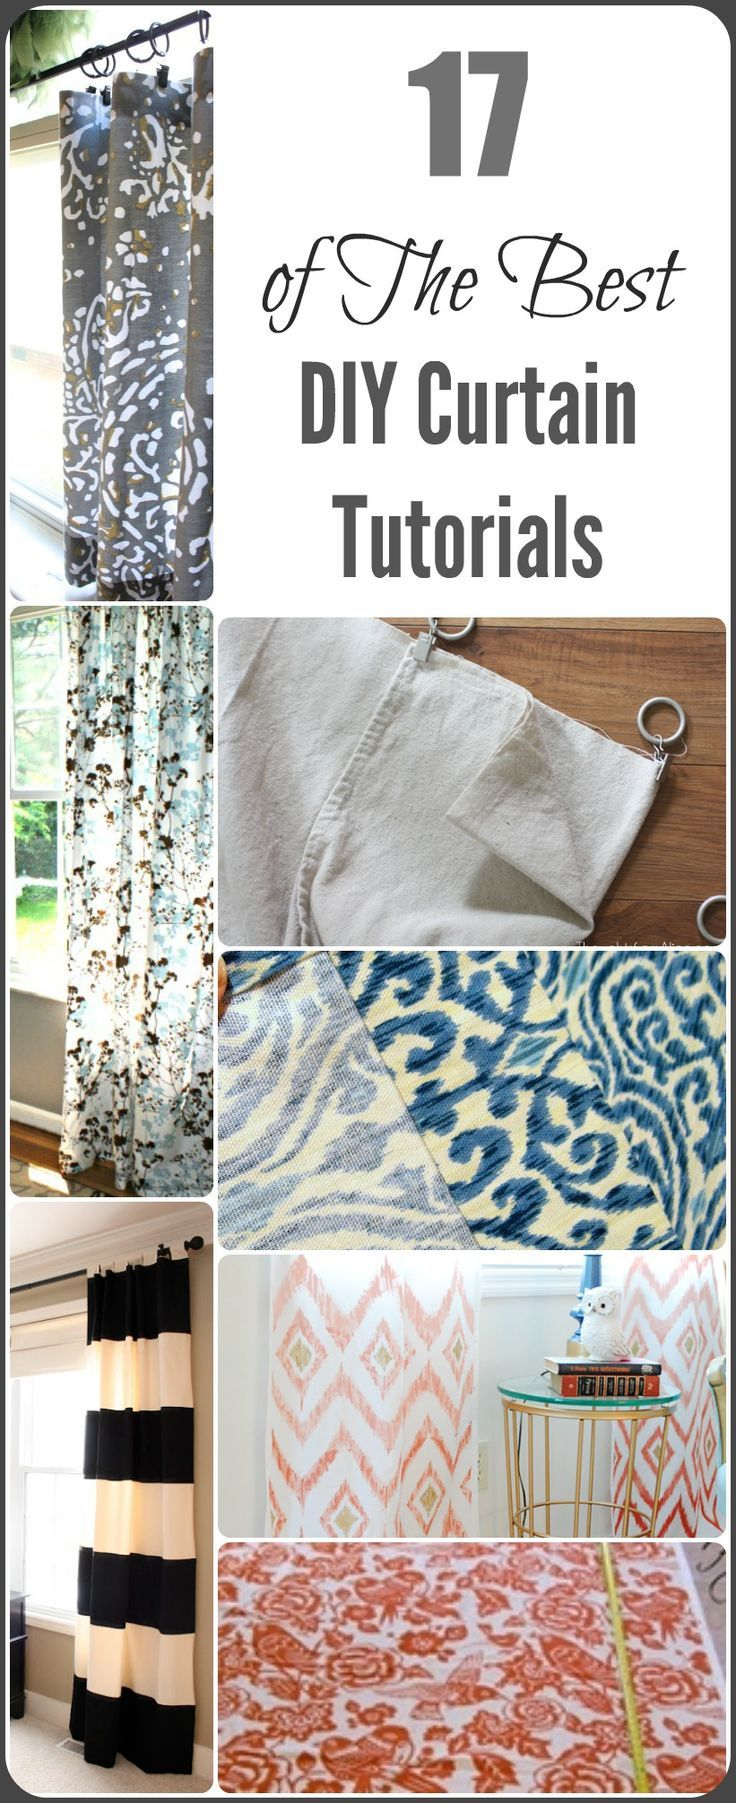 DIY Curtain Ideas and Tutorials. 25  unique Diy curtains ideas on Pinterest   Sewing curtains  How